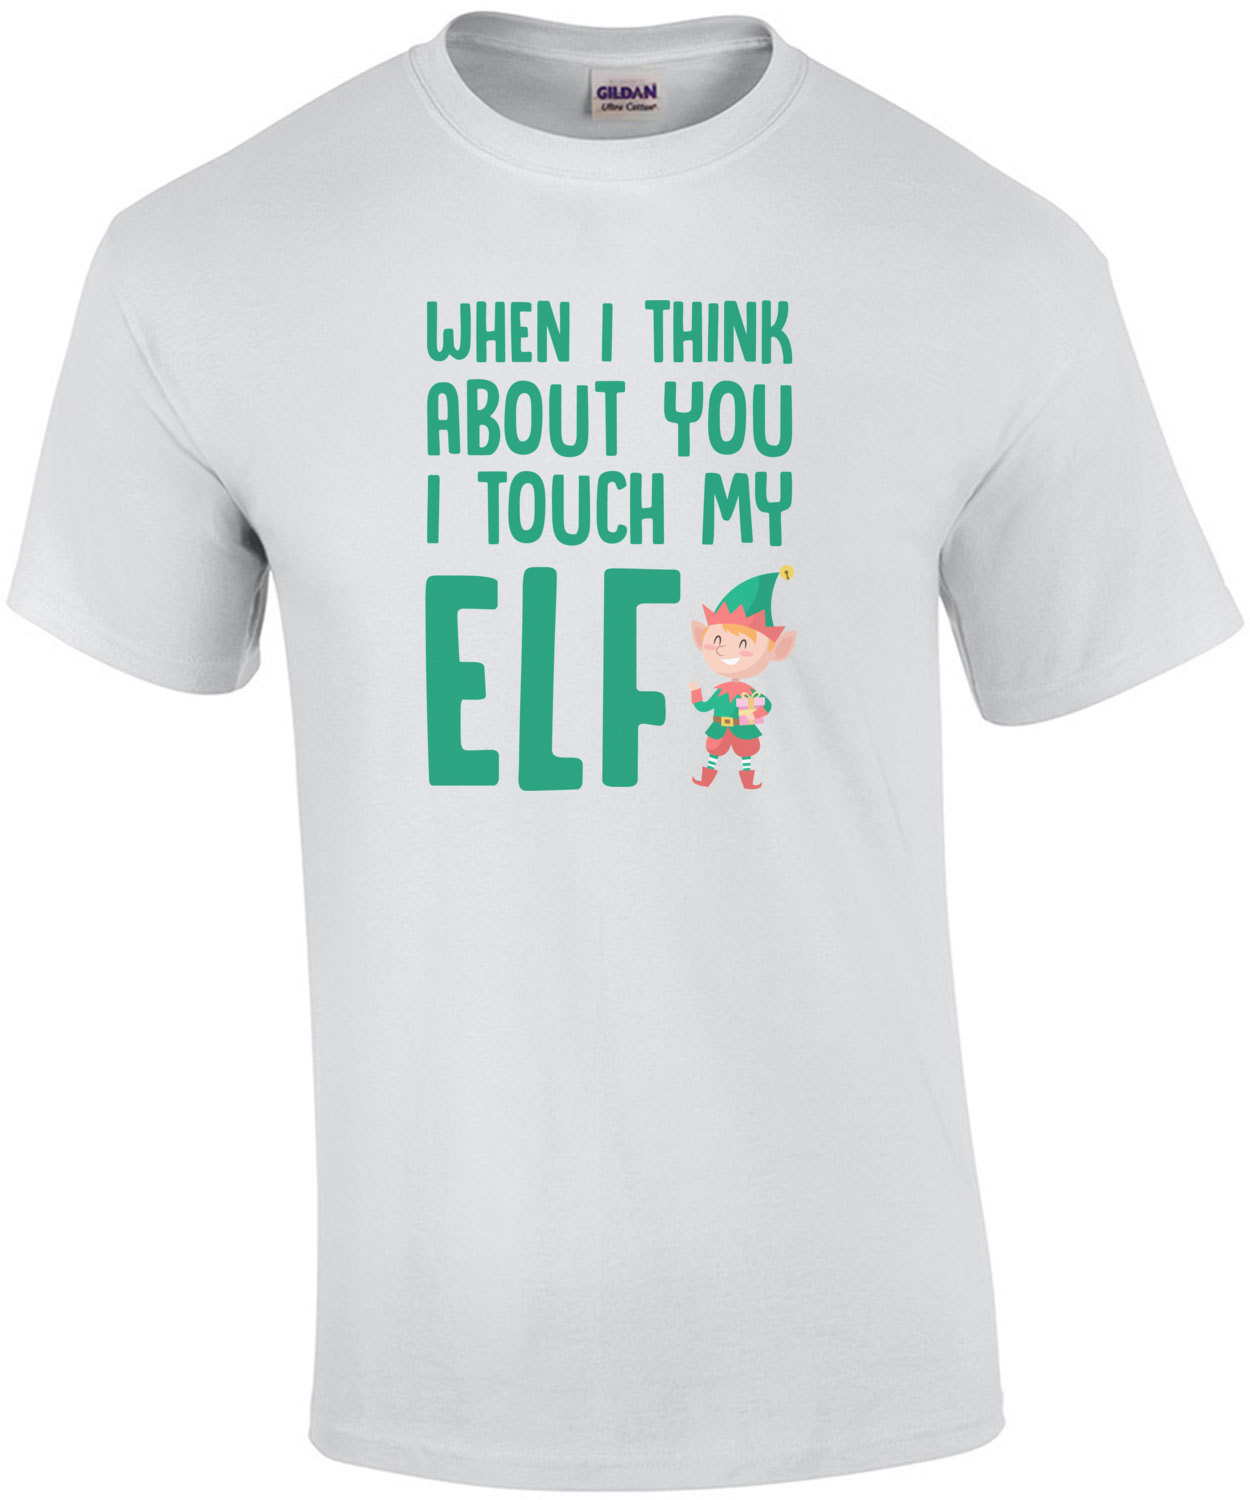 When I think about you I touch my elf - Inspired by the 90's hit by the Divinyls - I touch myself. Christmas T-Shirt